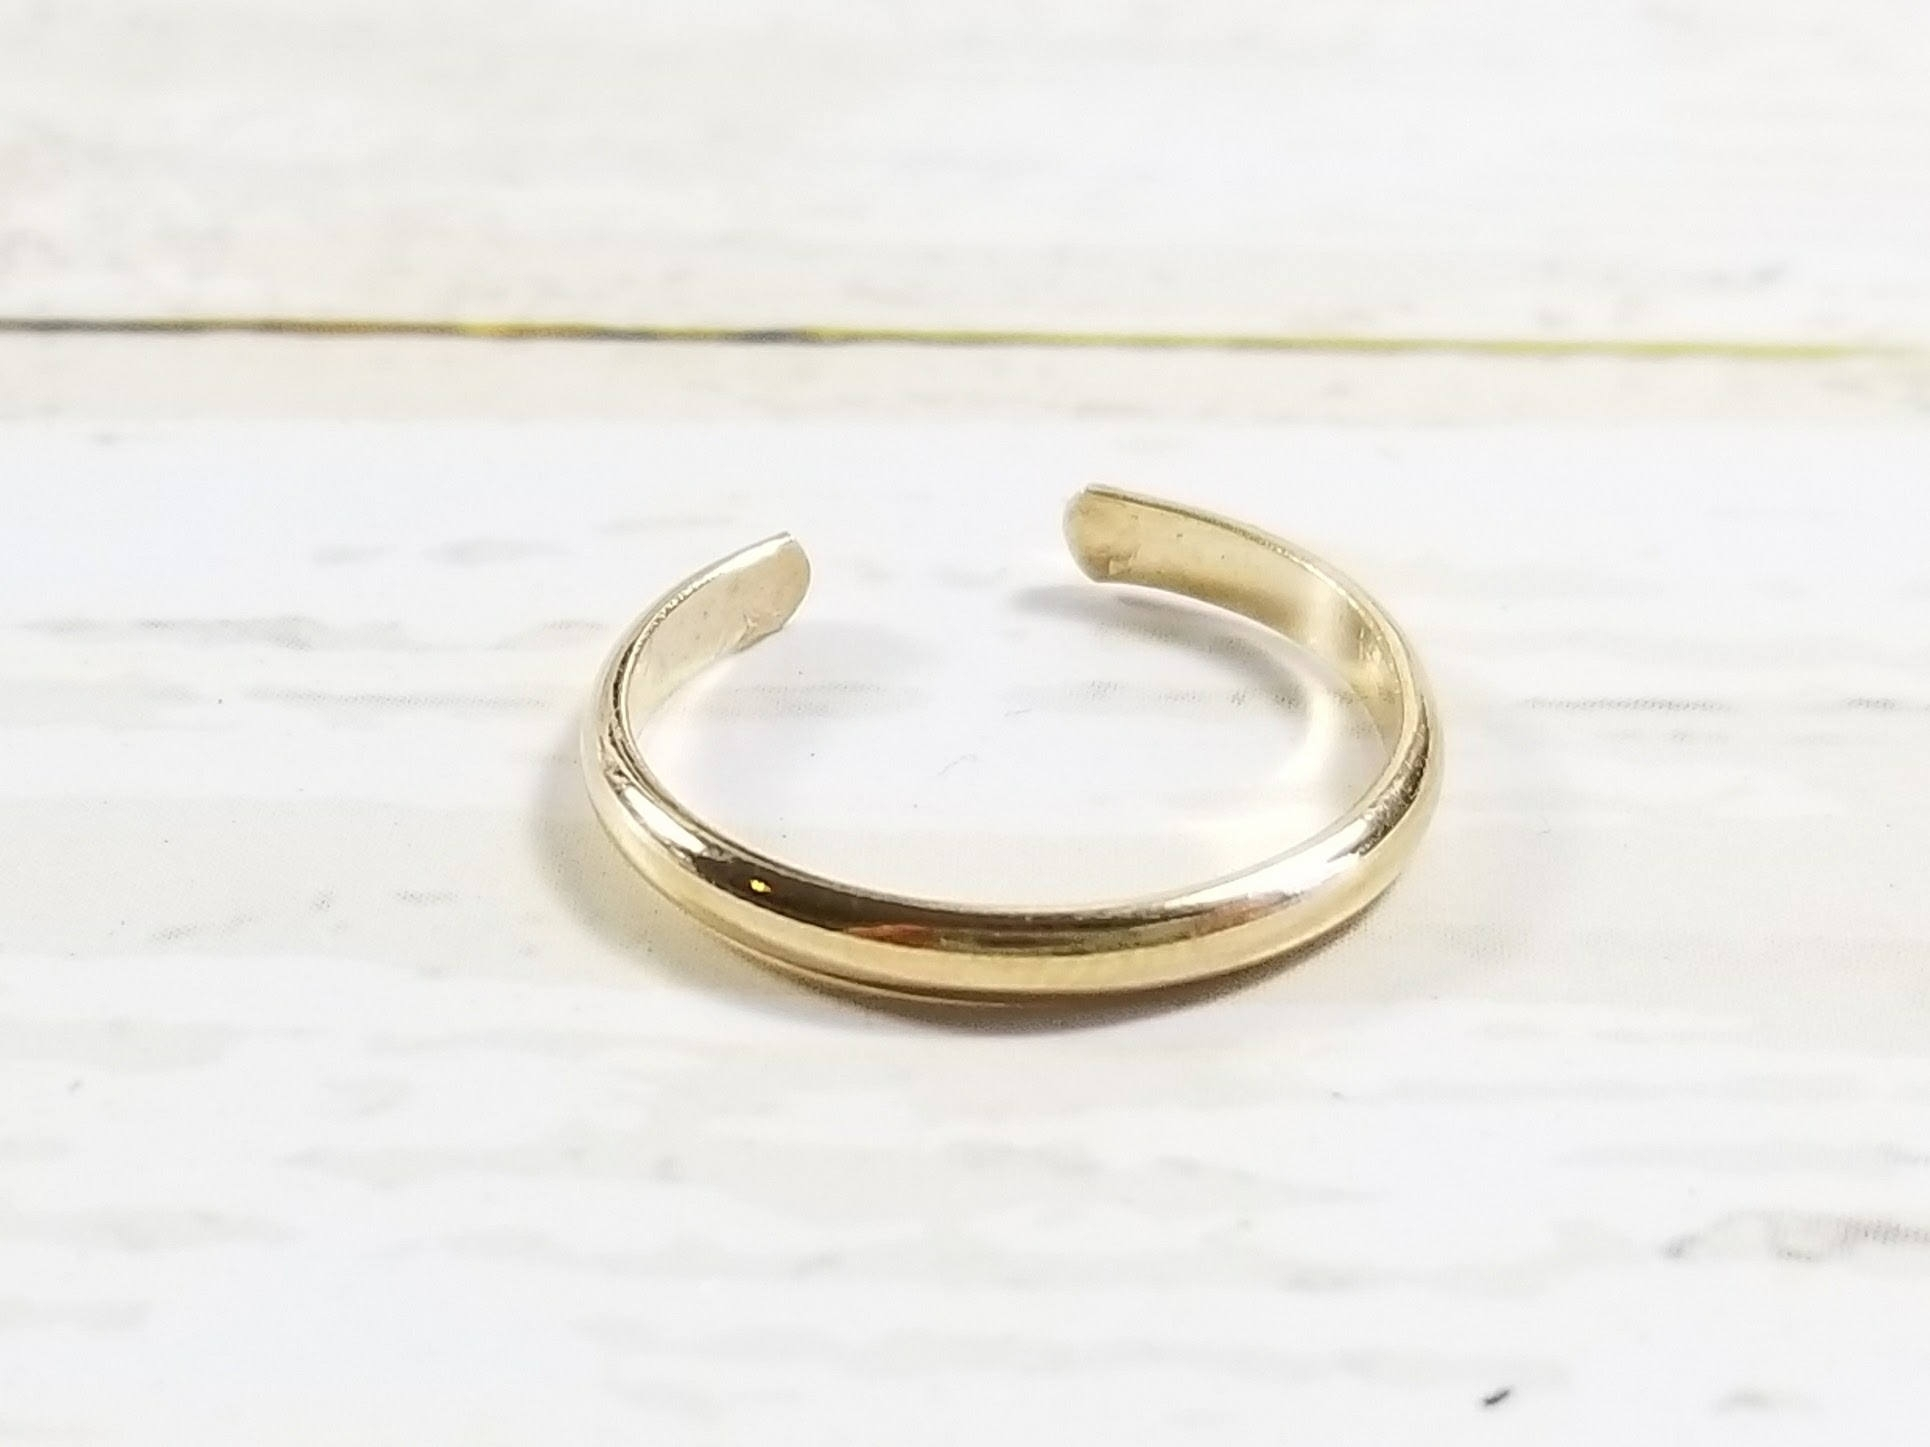 Solid 14K Yellow Gold Half Round Toe Ring Regarding 2017 Full Circle Toe Rings (View 12 of 15)